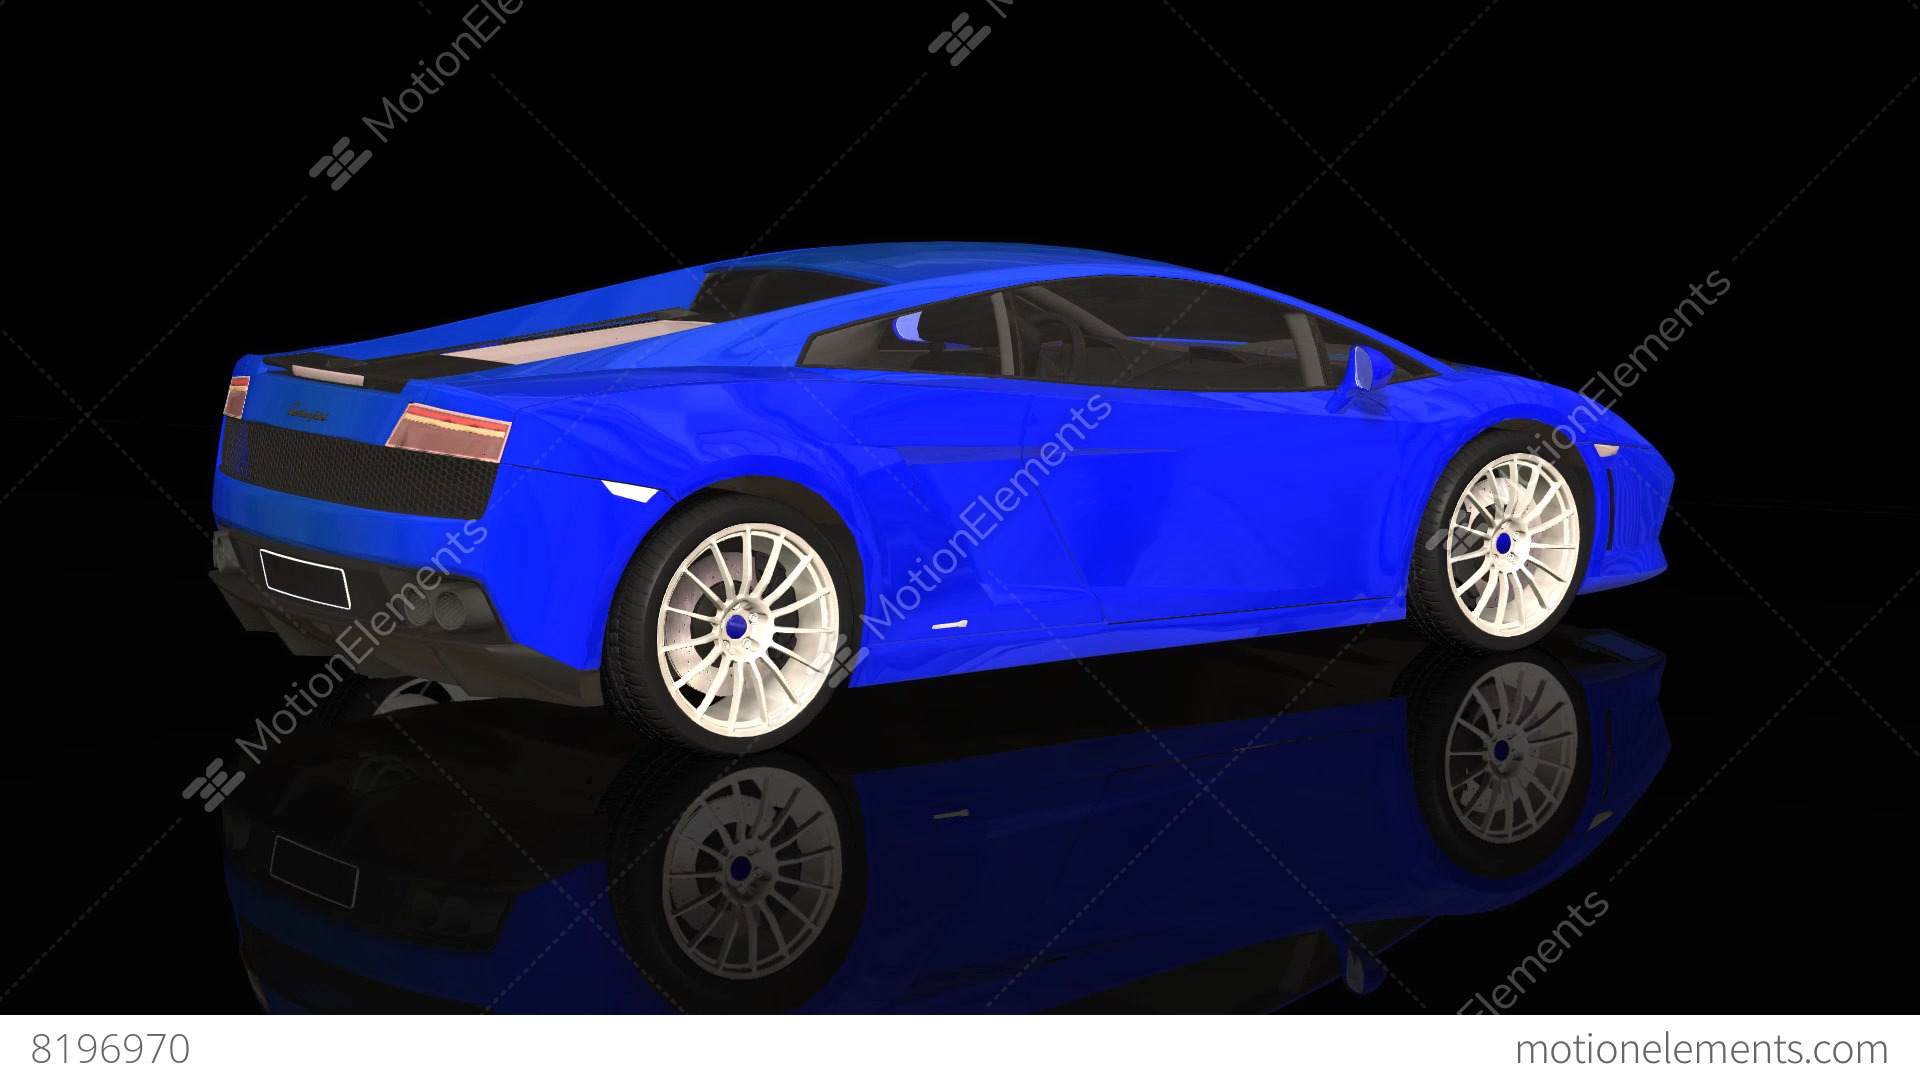 Luxury Sport Car Lamborghini Blue Color Moving Rotation Stock